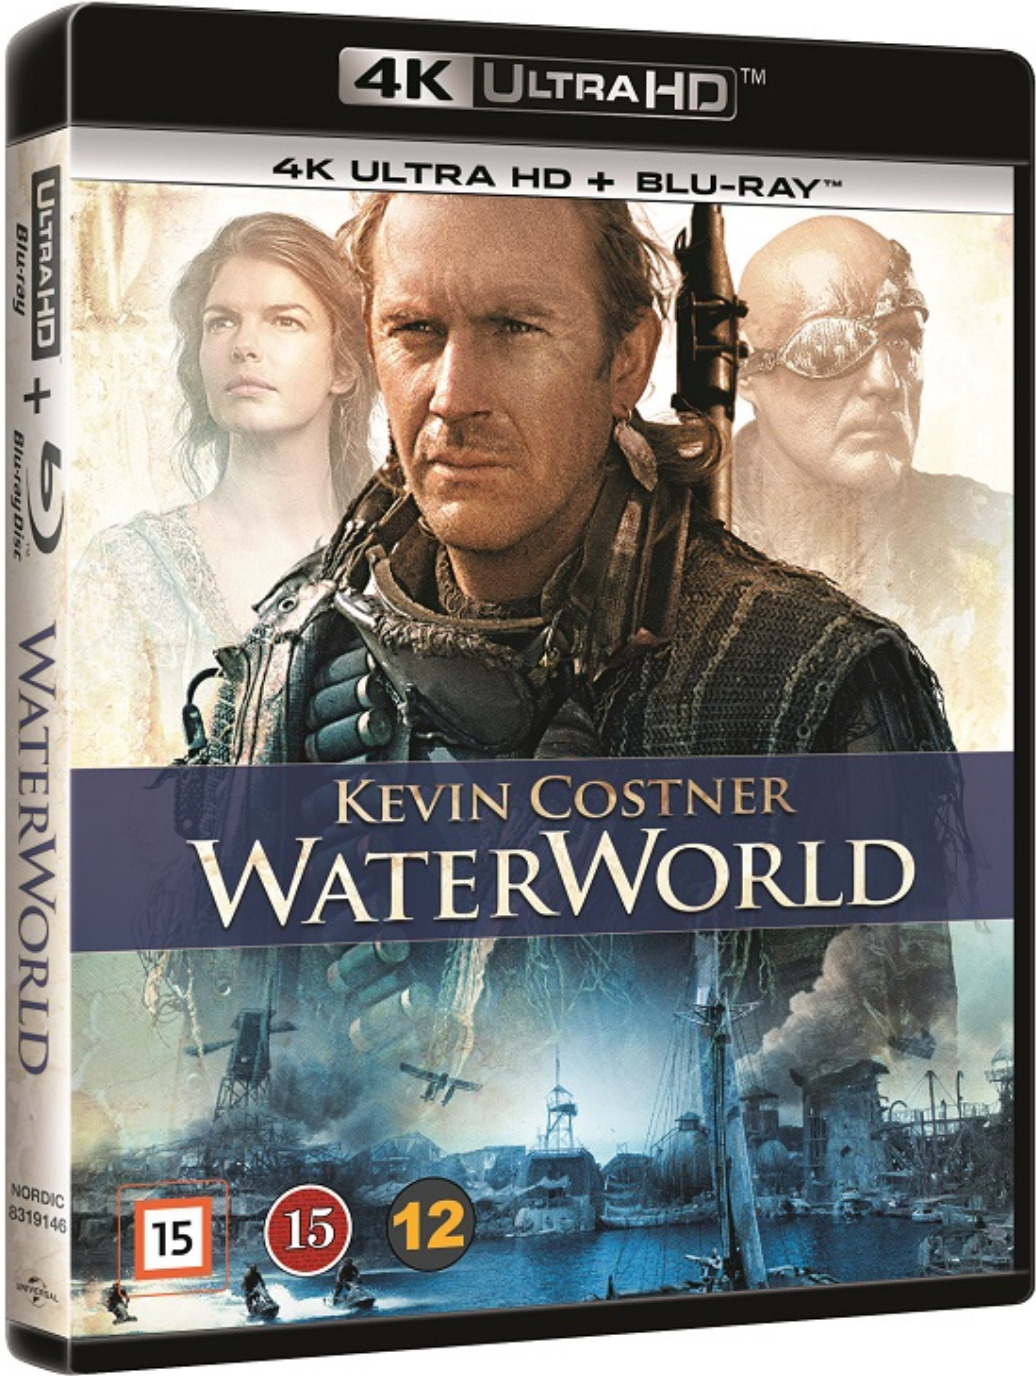 Wodny ¦wiat - Waterworld (1995) - Film 4K Ultra-HD